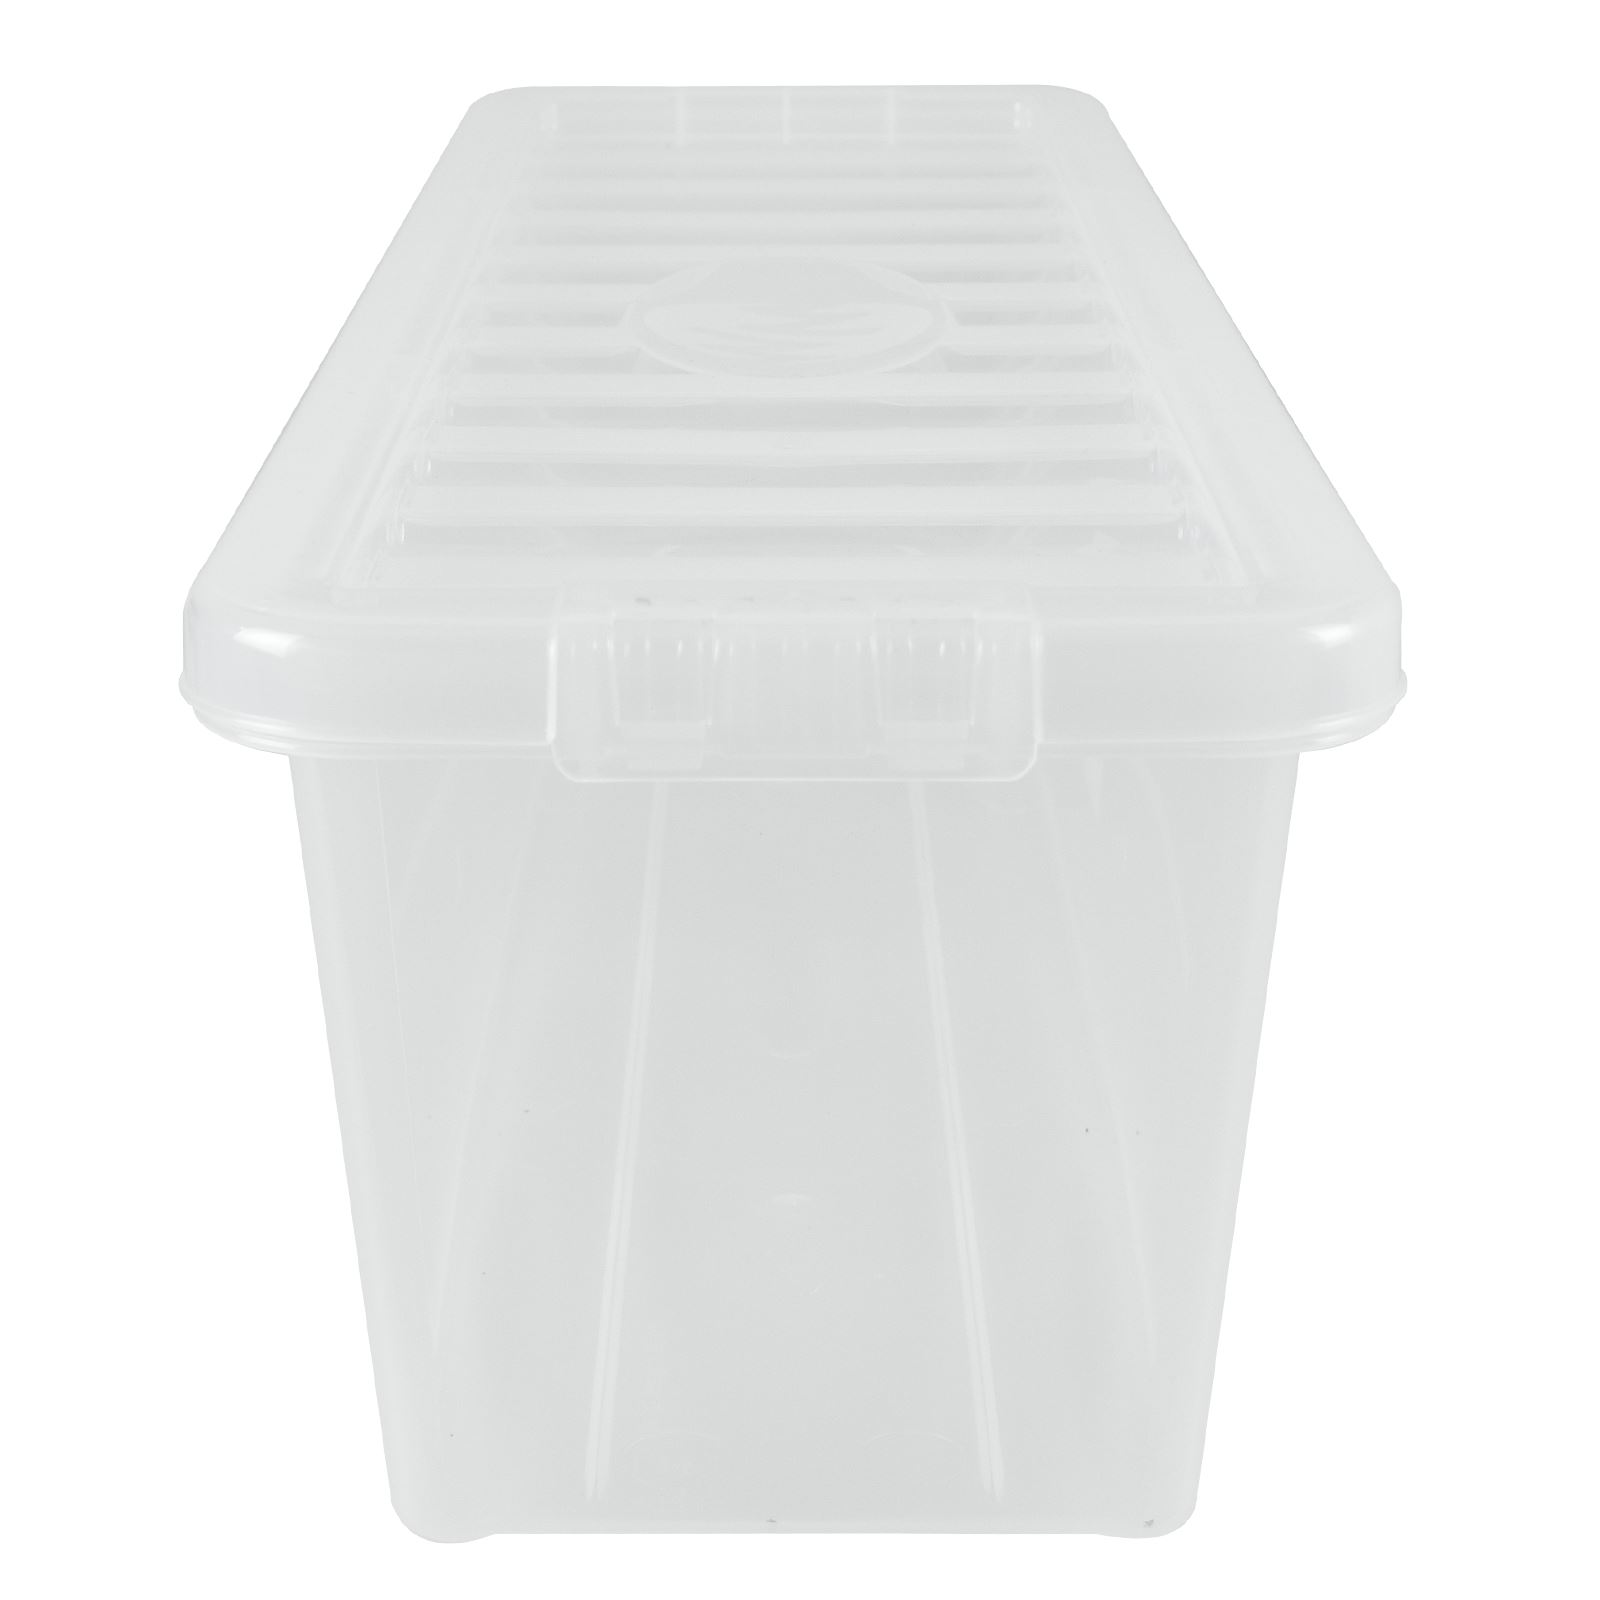 Wham-Crystal-Clear-Plastic-Storage-Box-Secure-Clip-on-Lid-Under-Bed-Space-Save thumbnail 6